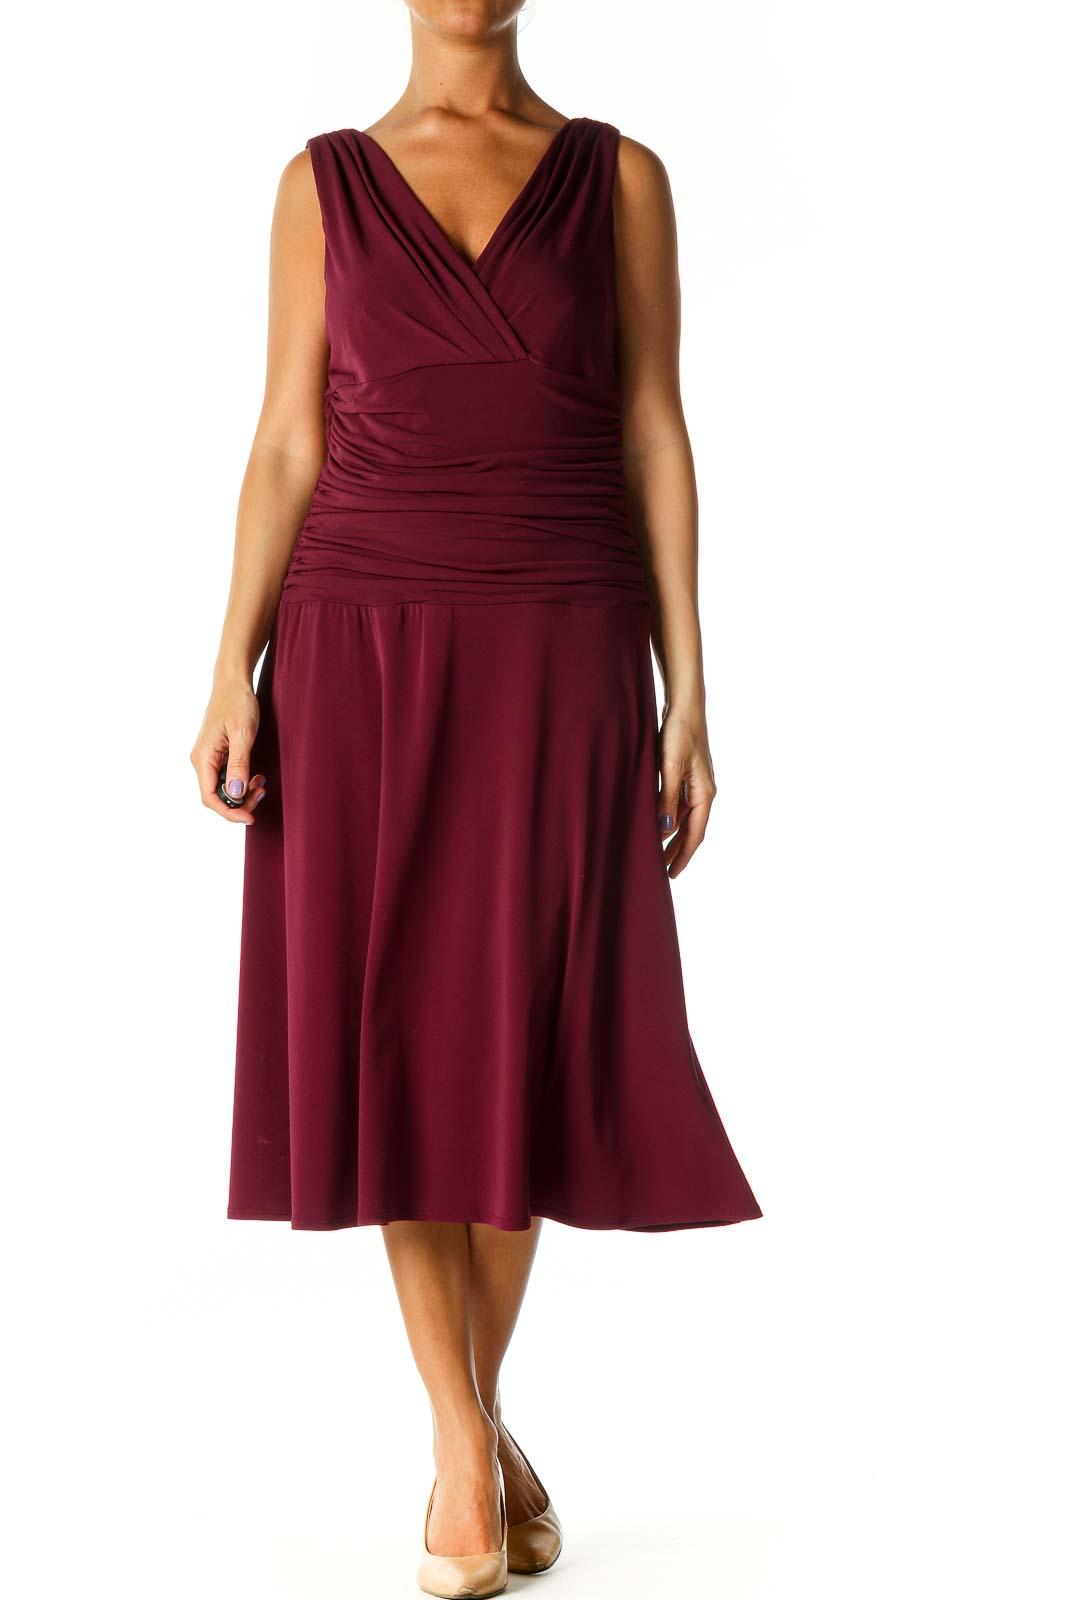 Purple Solid Casual A-Line Dress Front